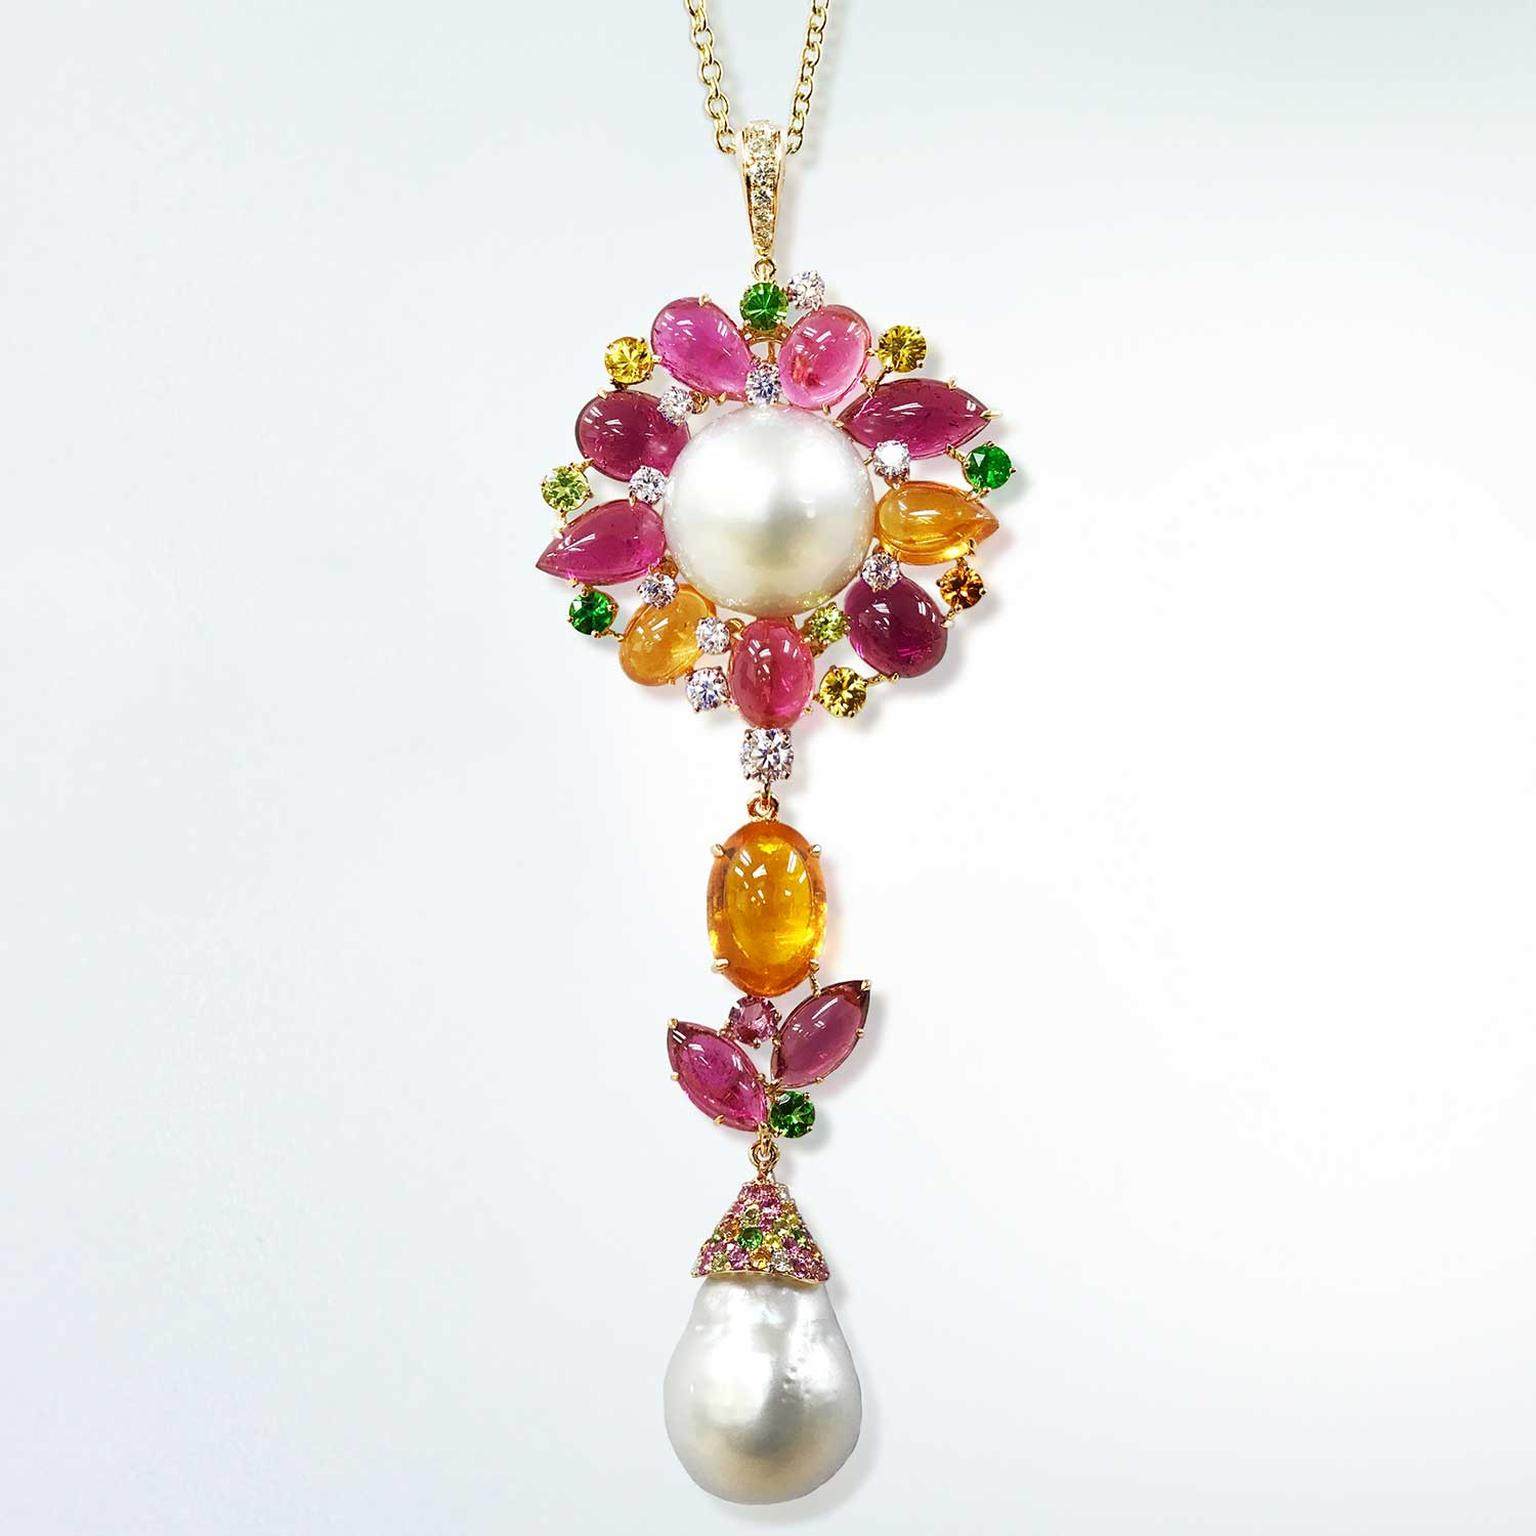 Margot McKinney floral pendant with South Sea pearl, rubellite and mandarin garnet